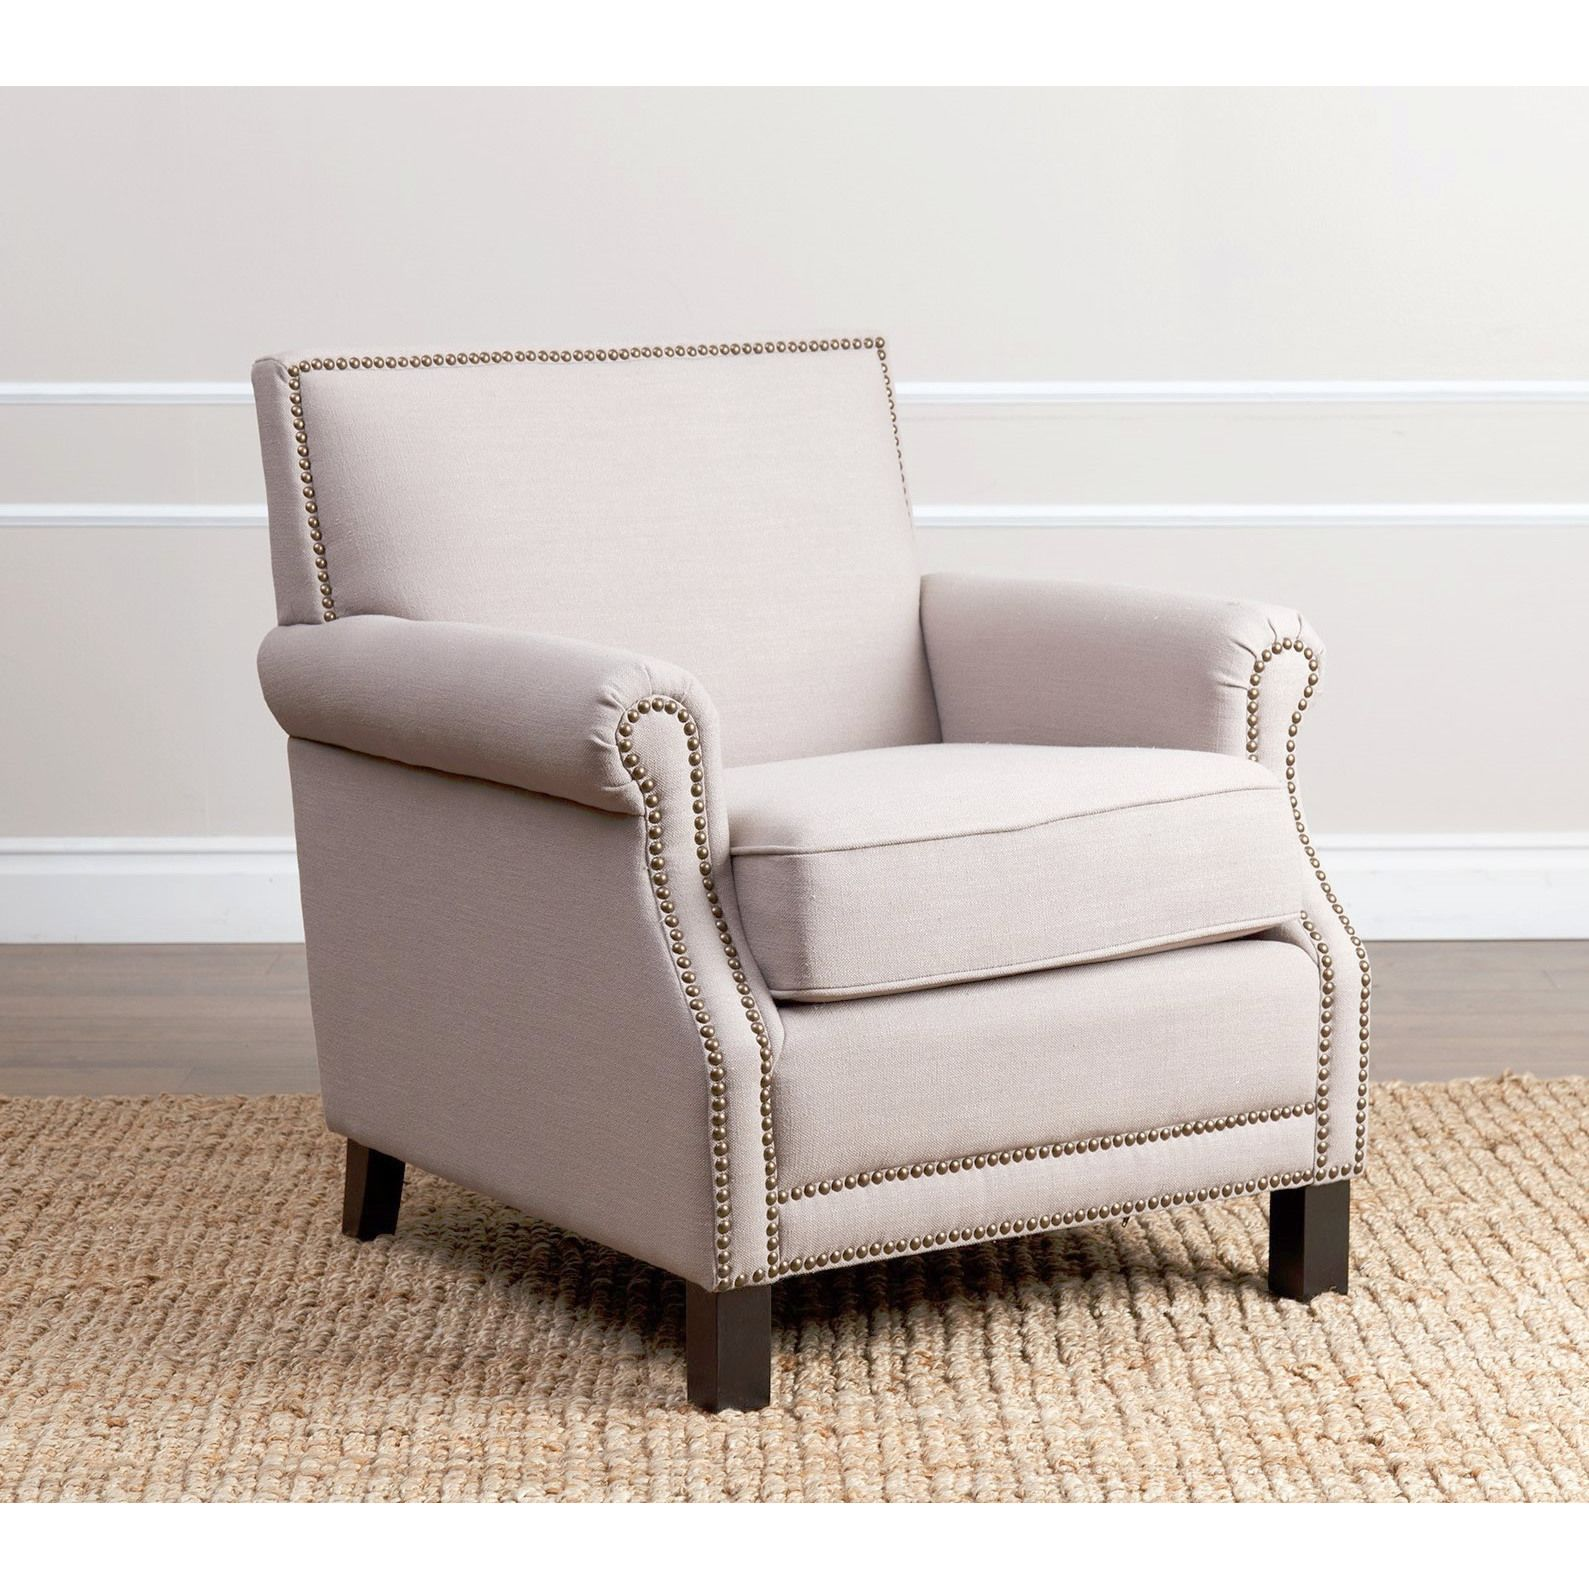 ABBYSON LIVING Chloe Beige Linen Club Chair Overstock Shopping